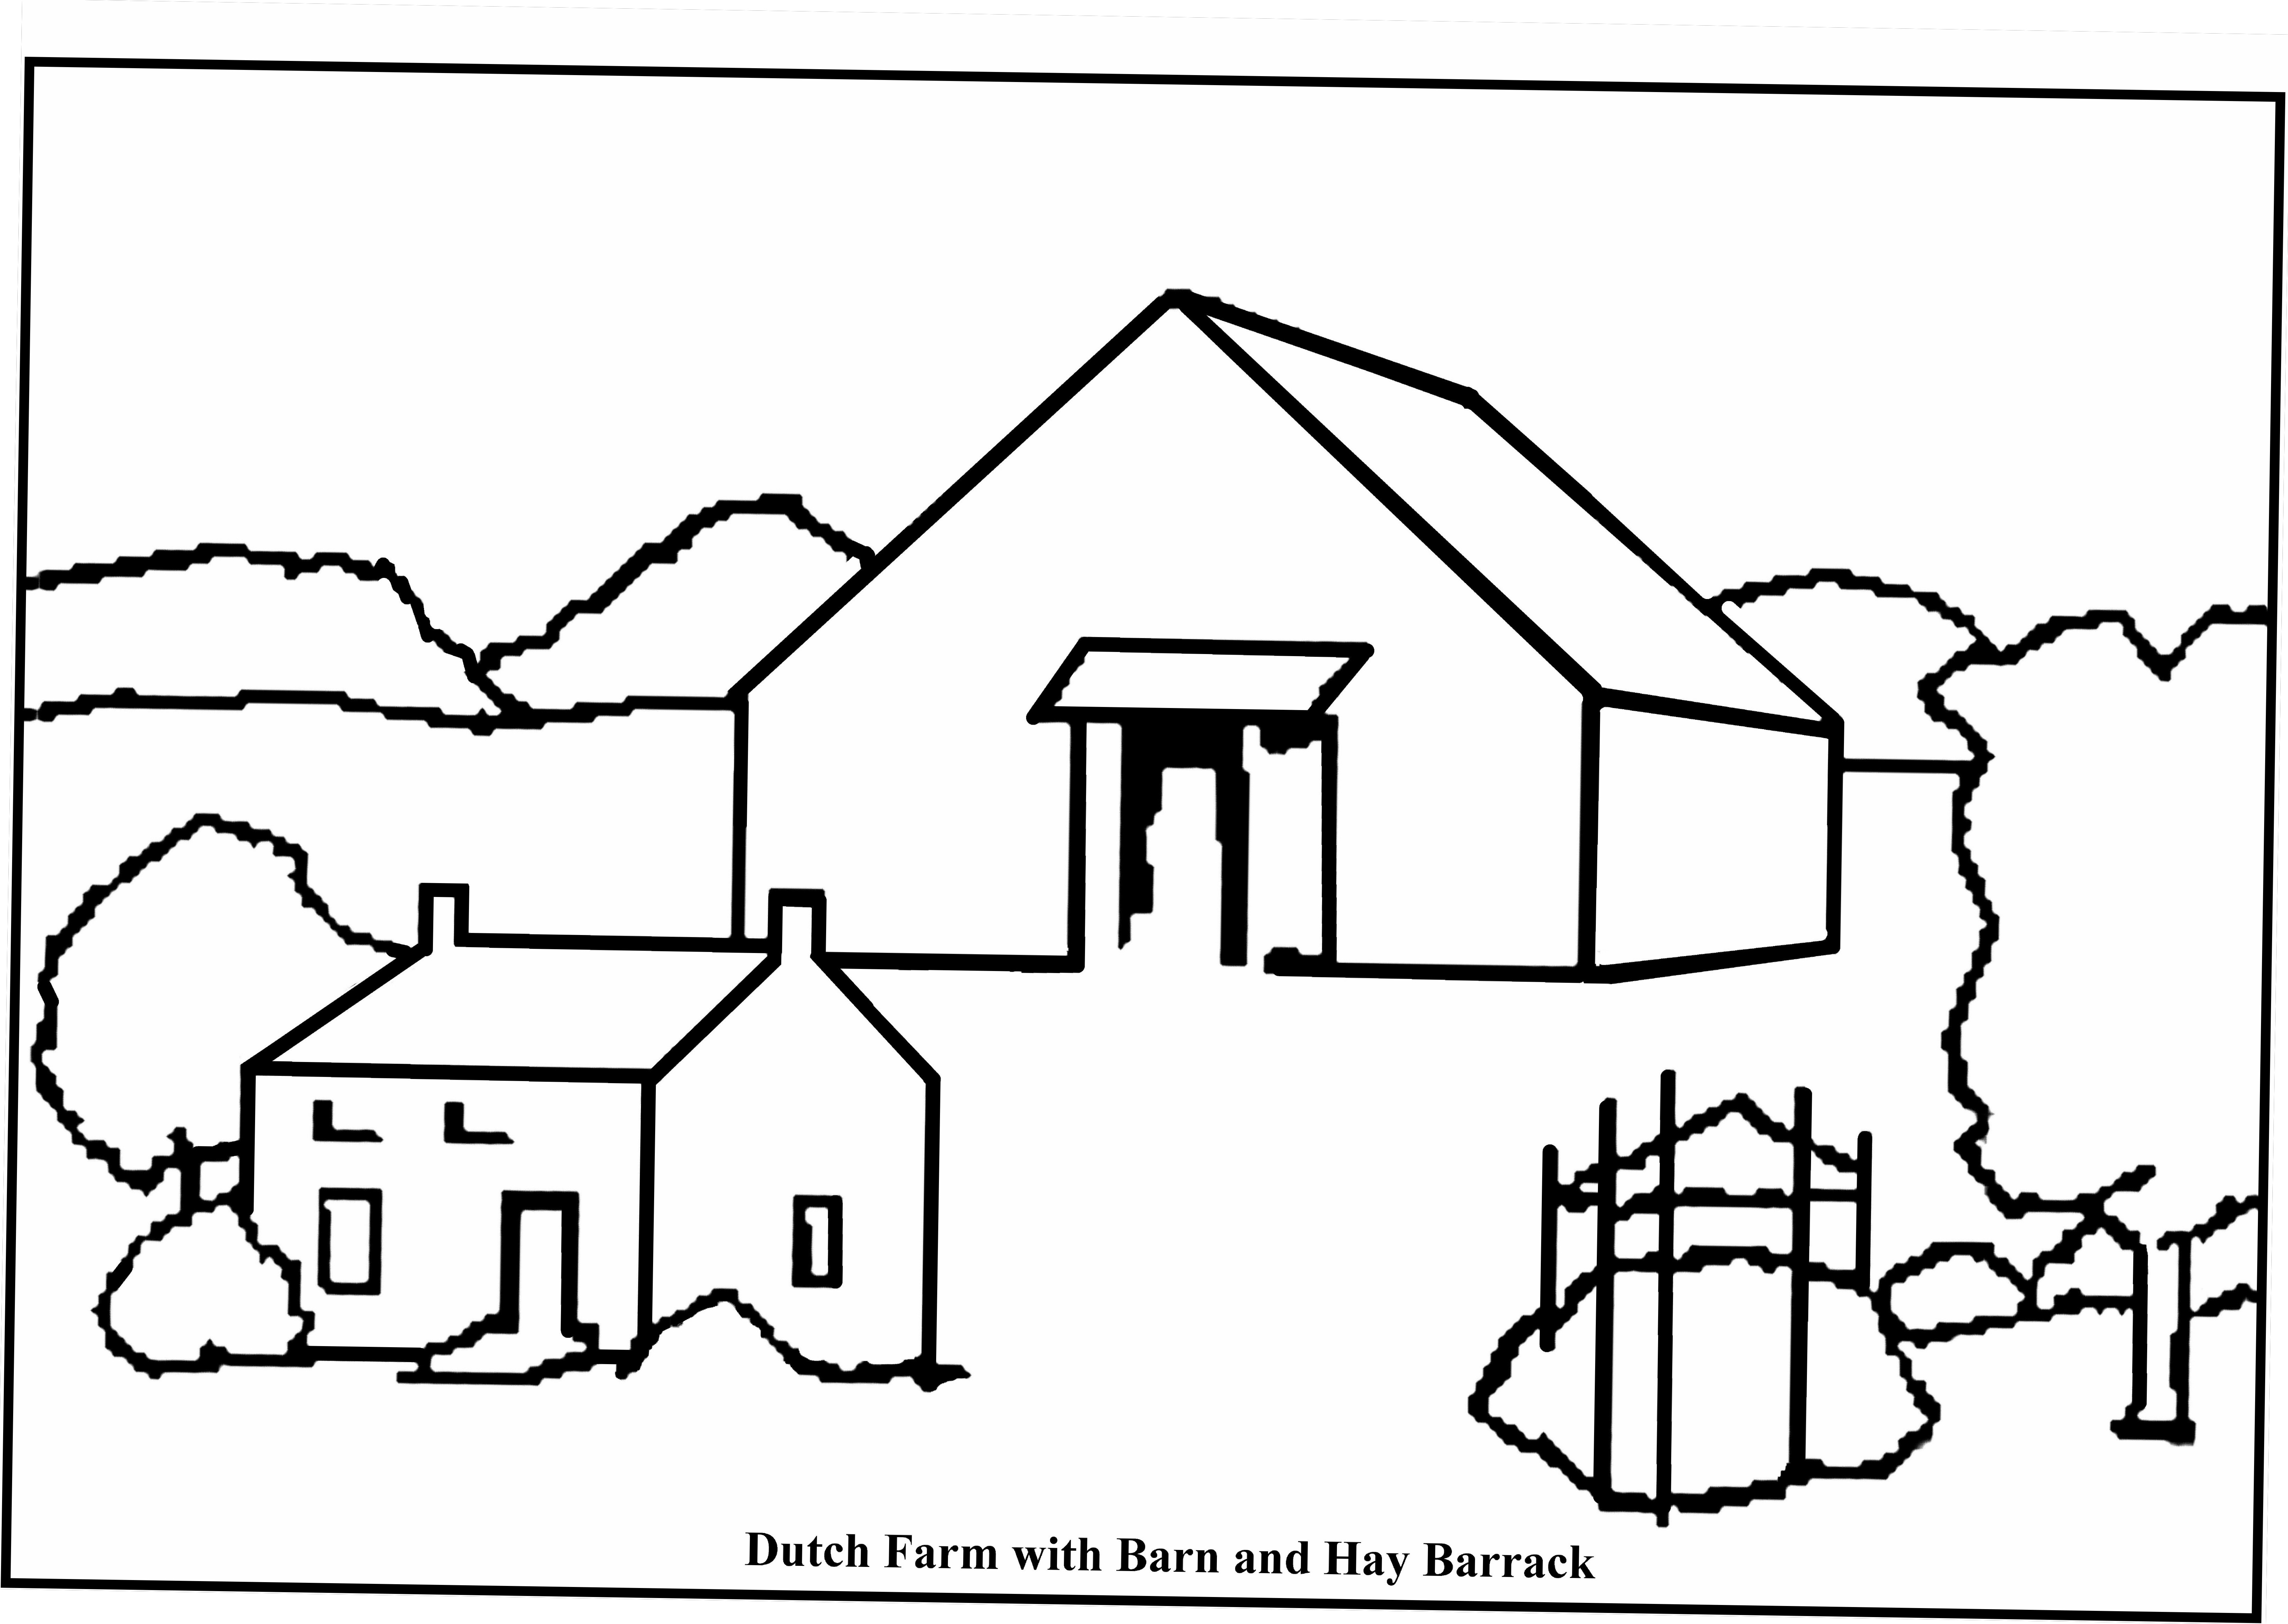 Simple Barn Drawing at GetDrawings.com | Free for personal use ... for Simple Farmhouse Drawing  565ane